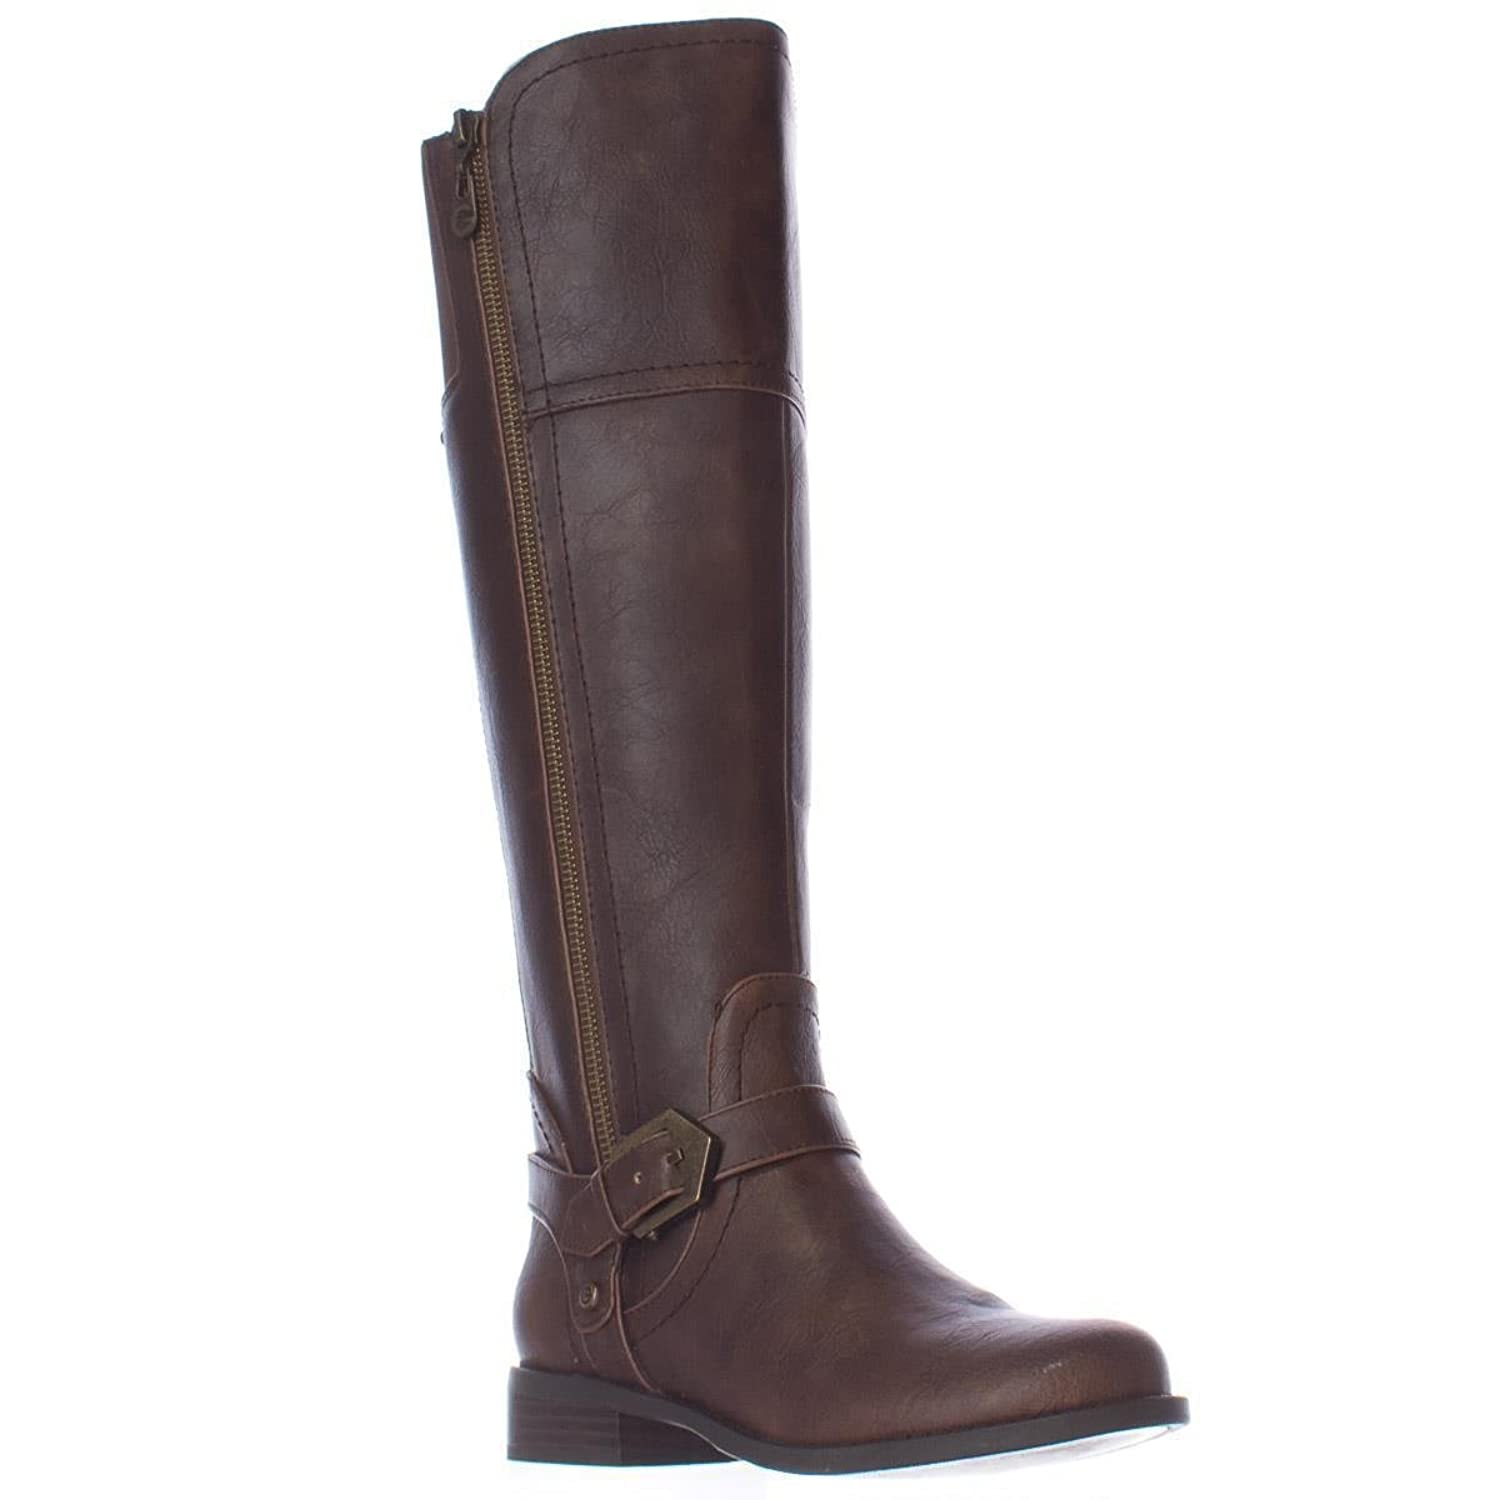 G by Guess Womens Hailee Dark Brown knee-high riding boots Size 8.5 M